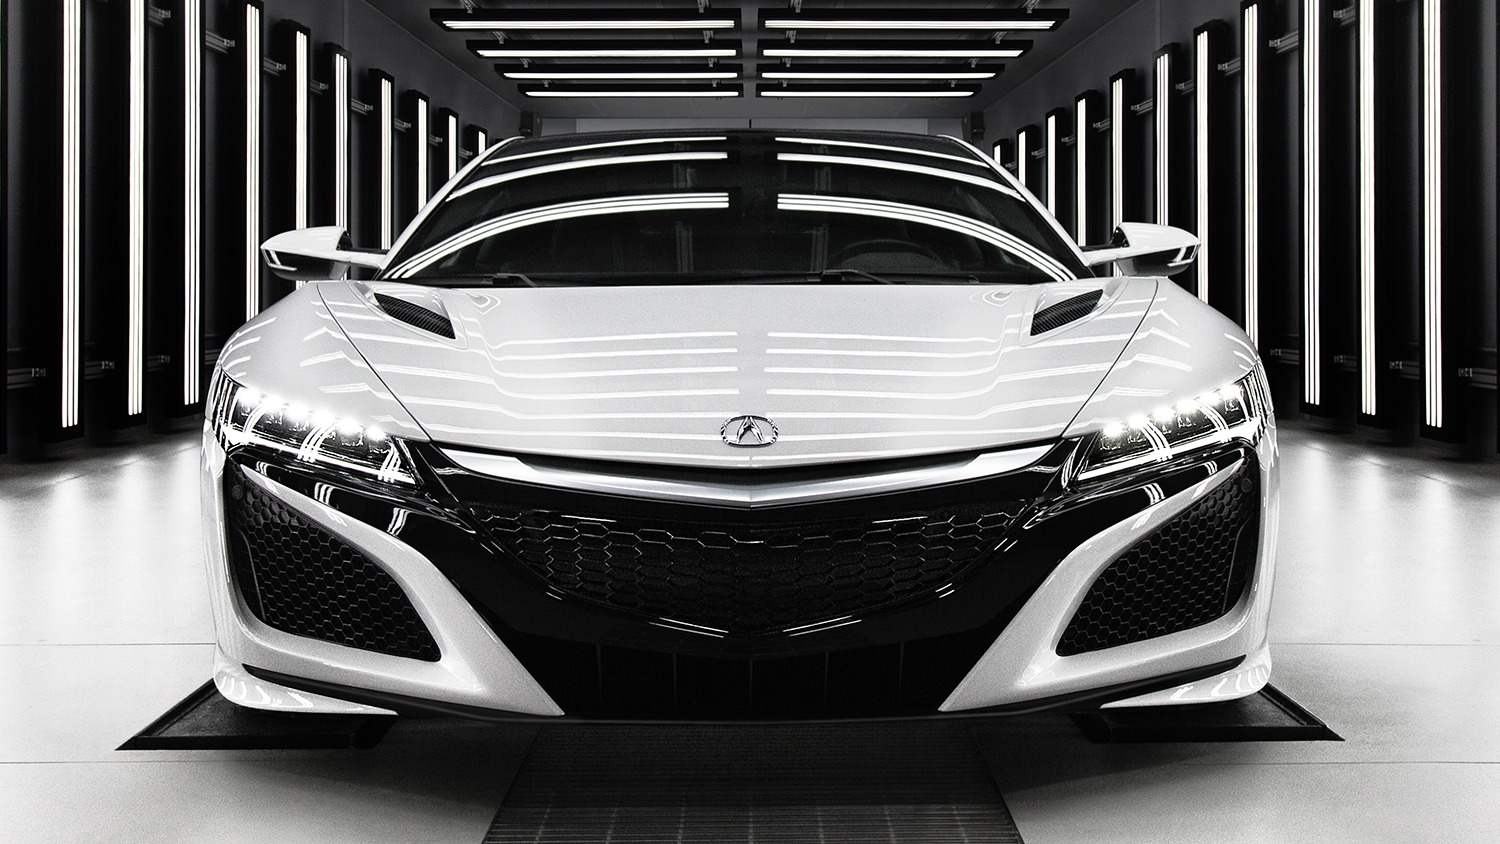 2017 Acura Nsx Georgia Acura Dealers Luxury Sports Cars In Ga